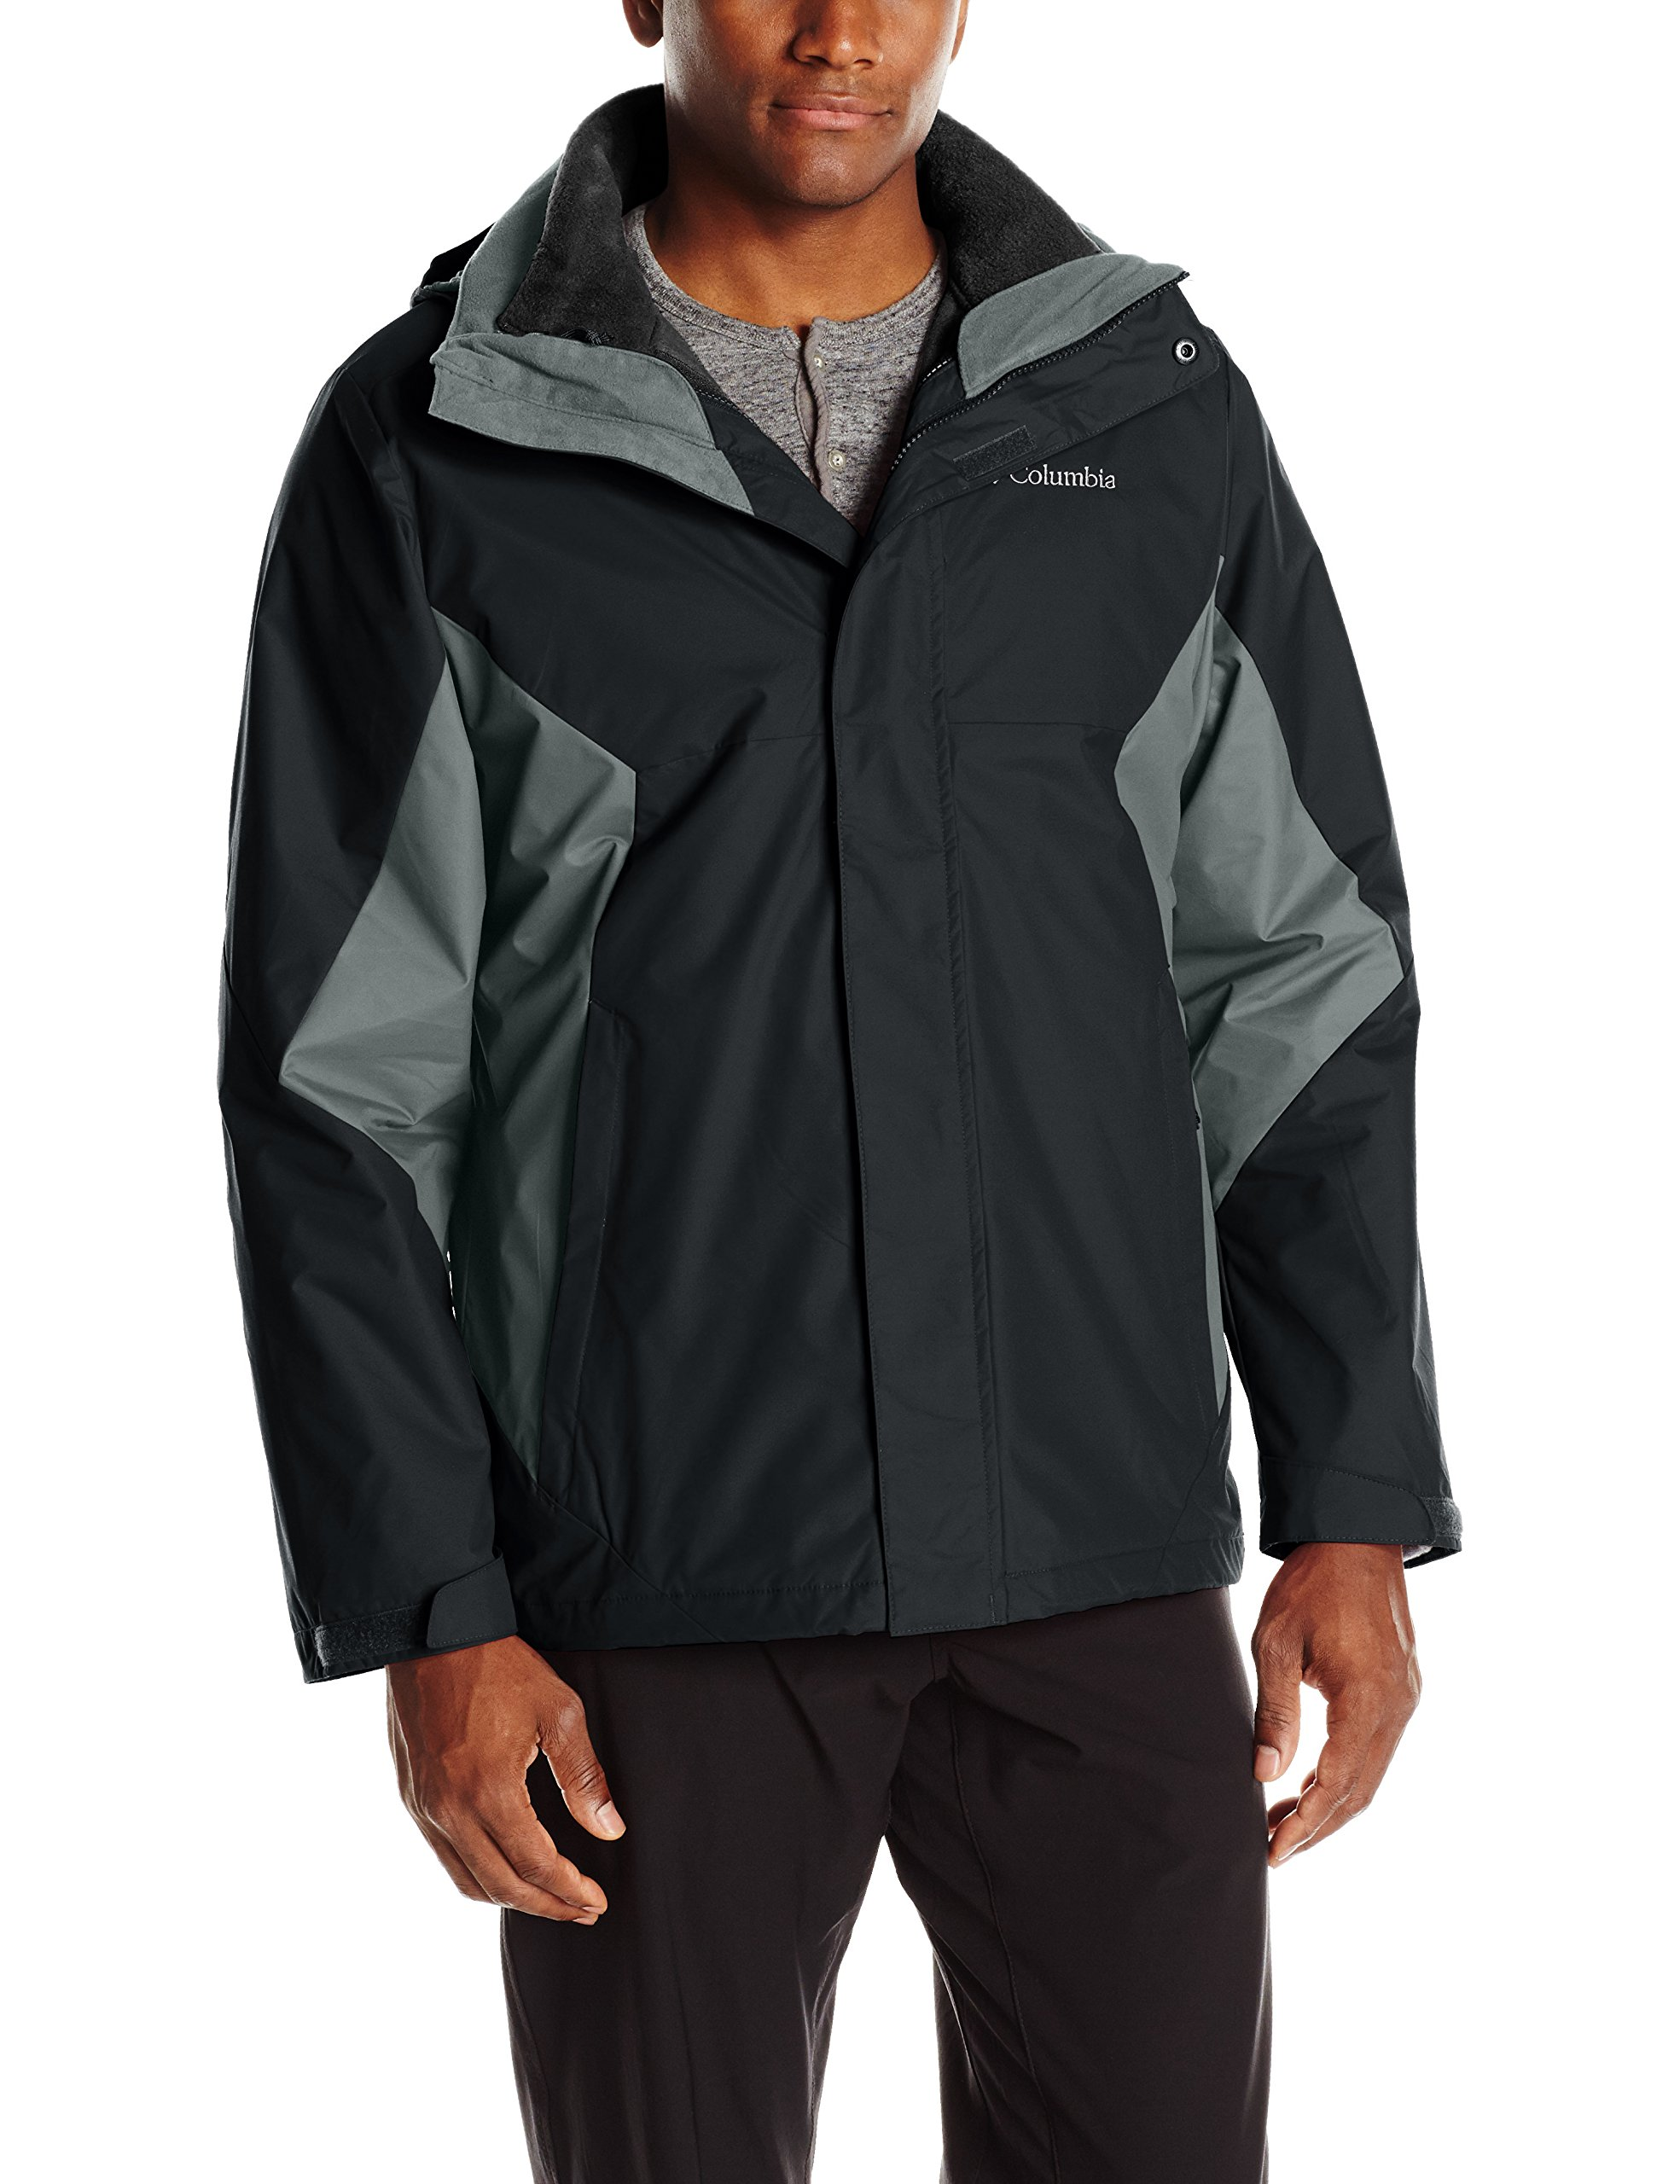 Columbia Men's Eager Air Interchange Jacket, Black/Graphite, Small by Columbia